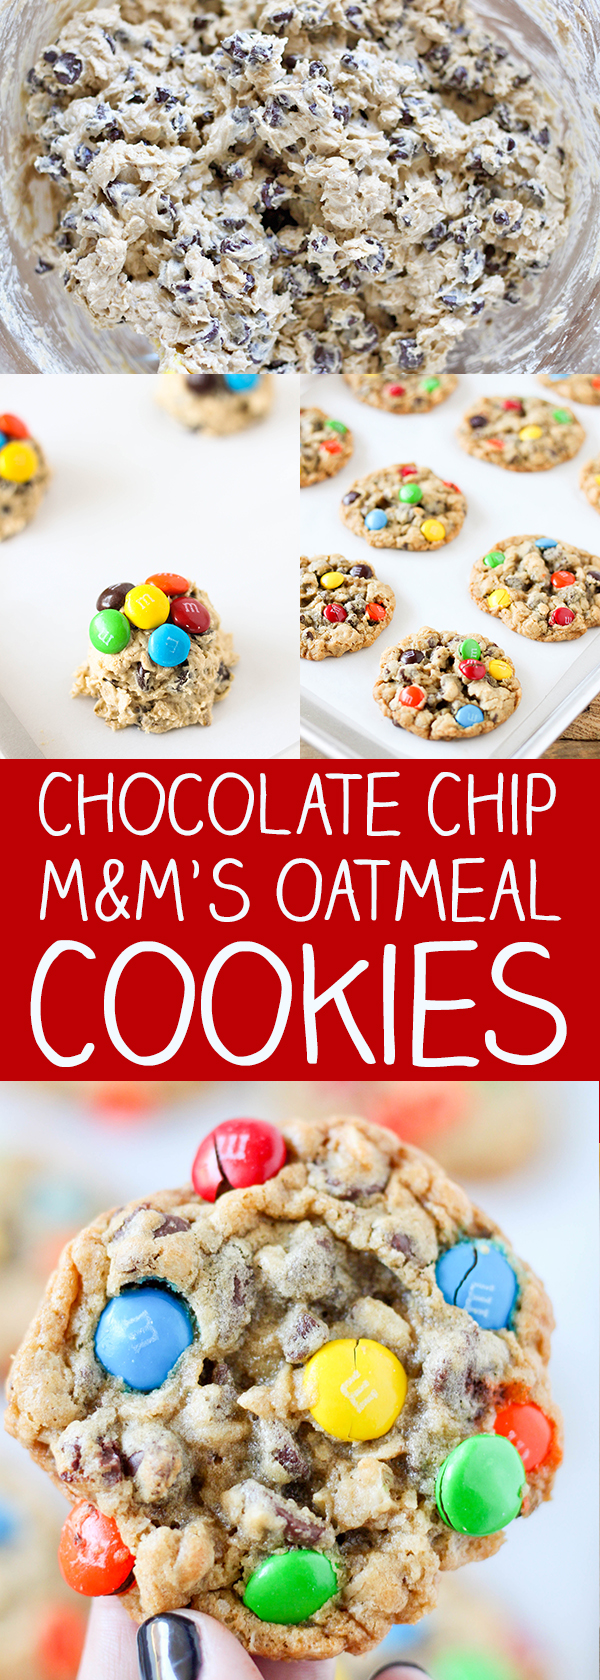 Chocolate Chip and M&M'S Oatmeal Cookies - packed with mini chocolate chips, semi sweet chocolate chips, oatmeal and colorful M&M'S!